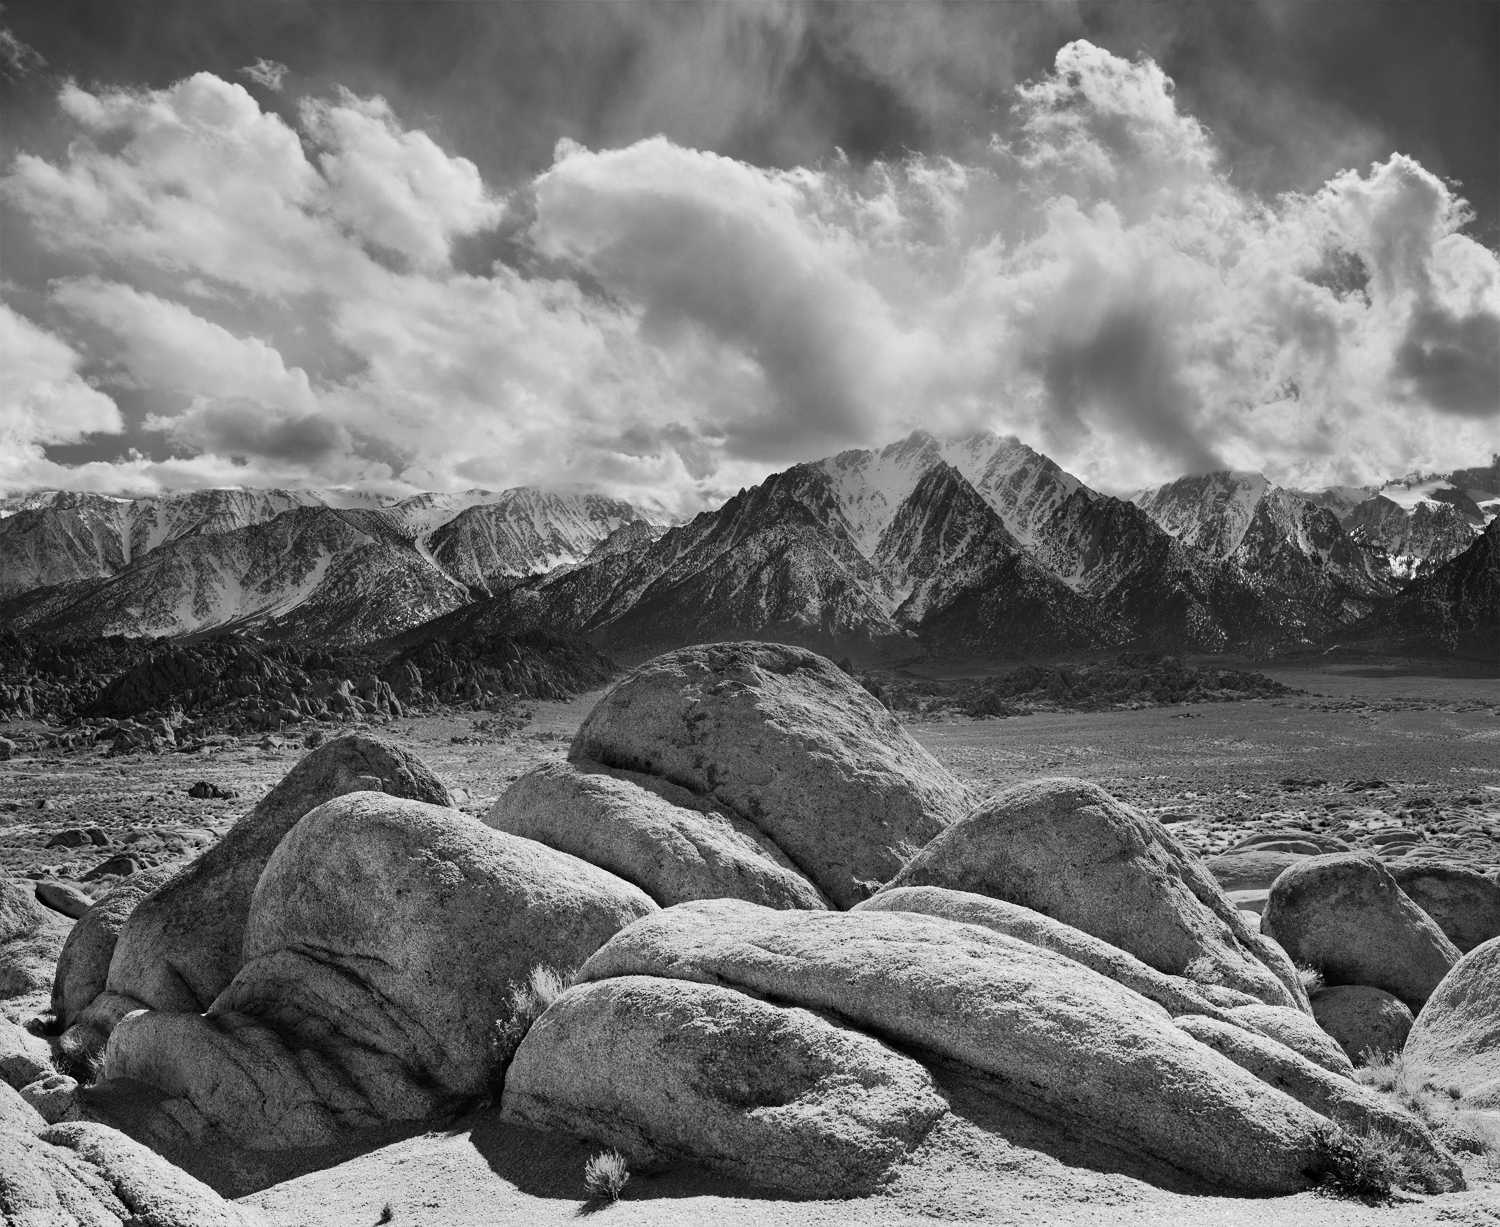 Boulders and Eastern Sierra 2006